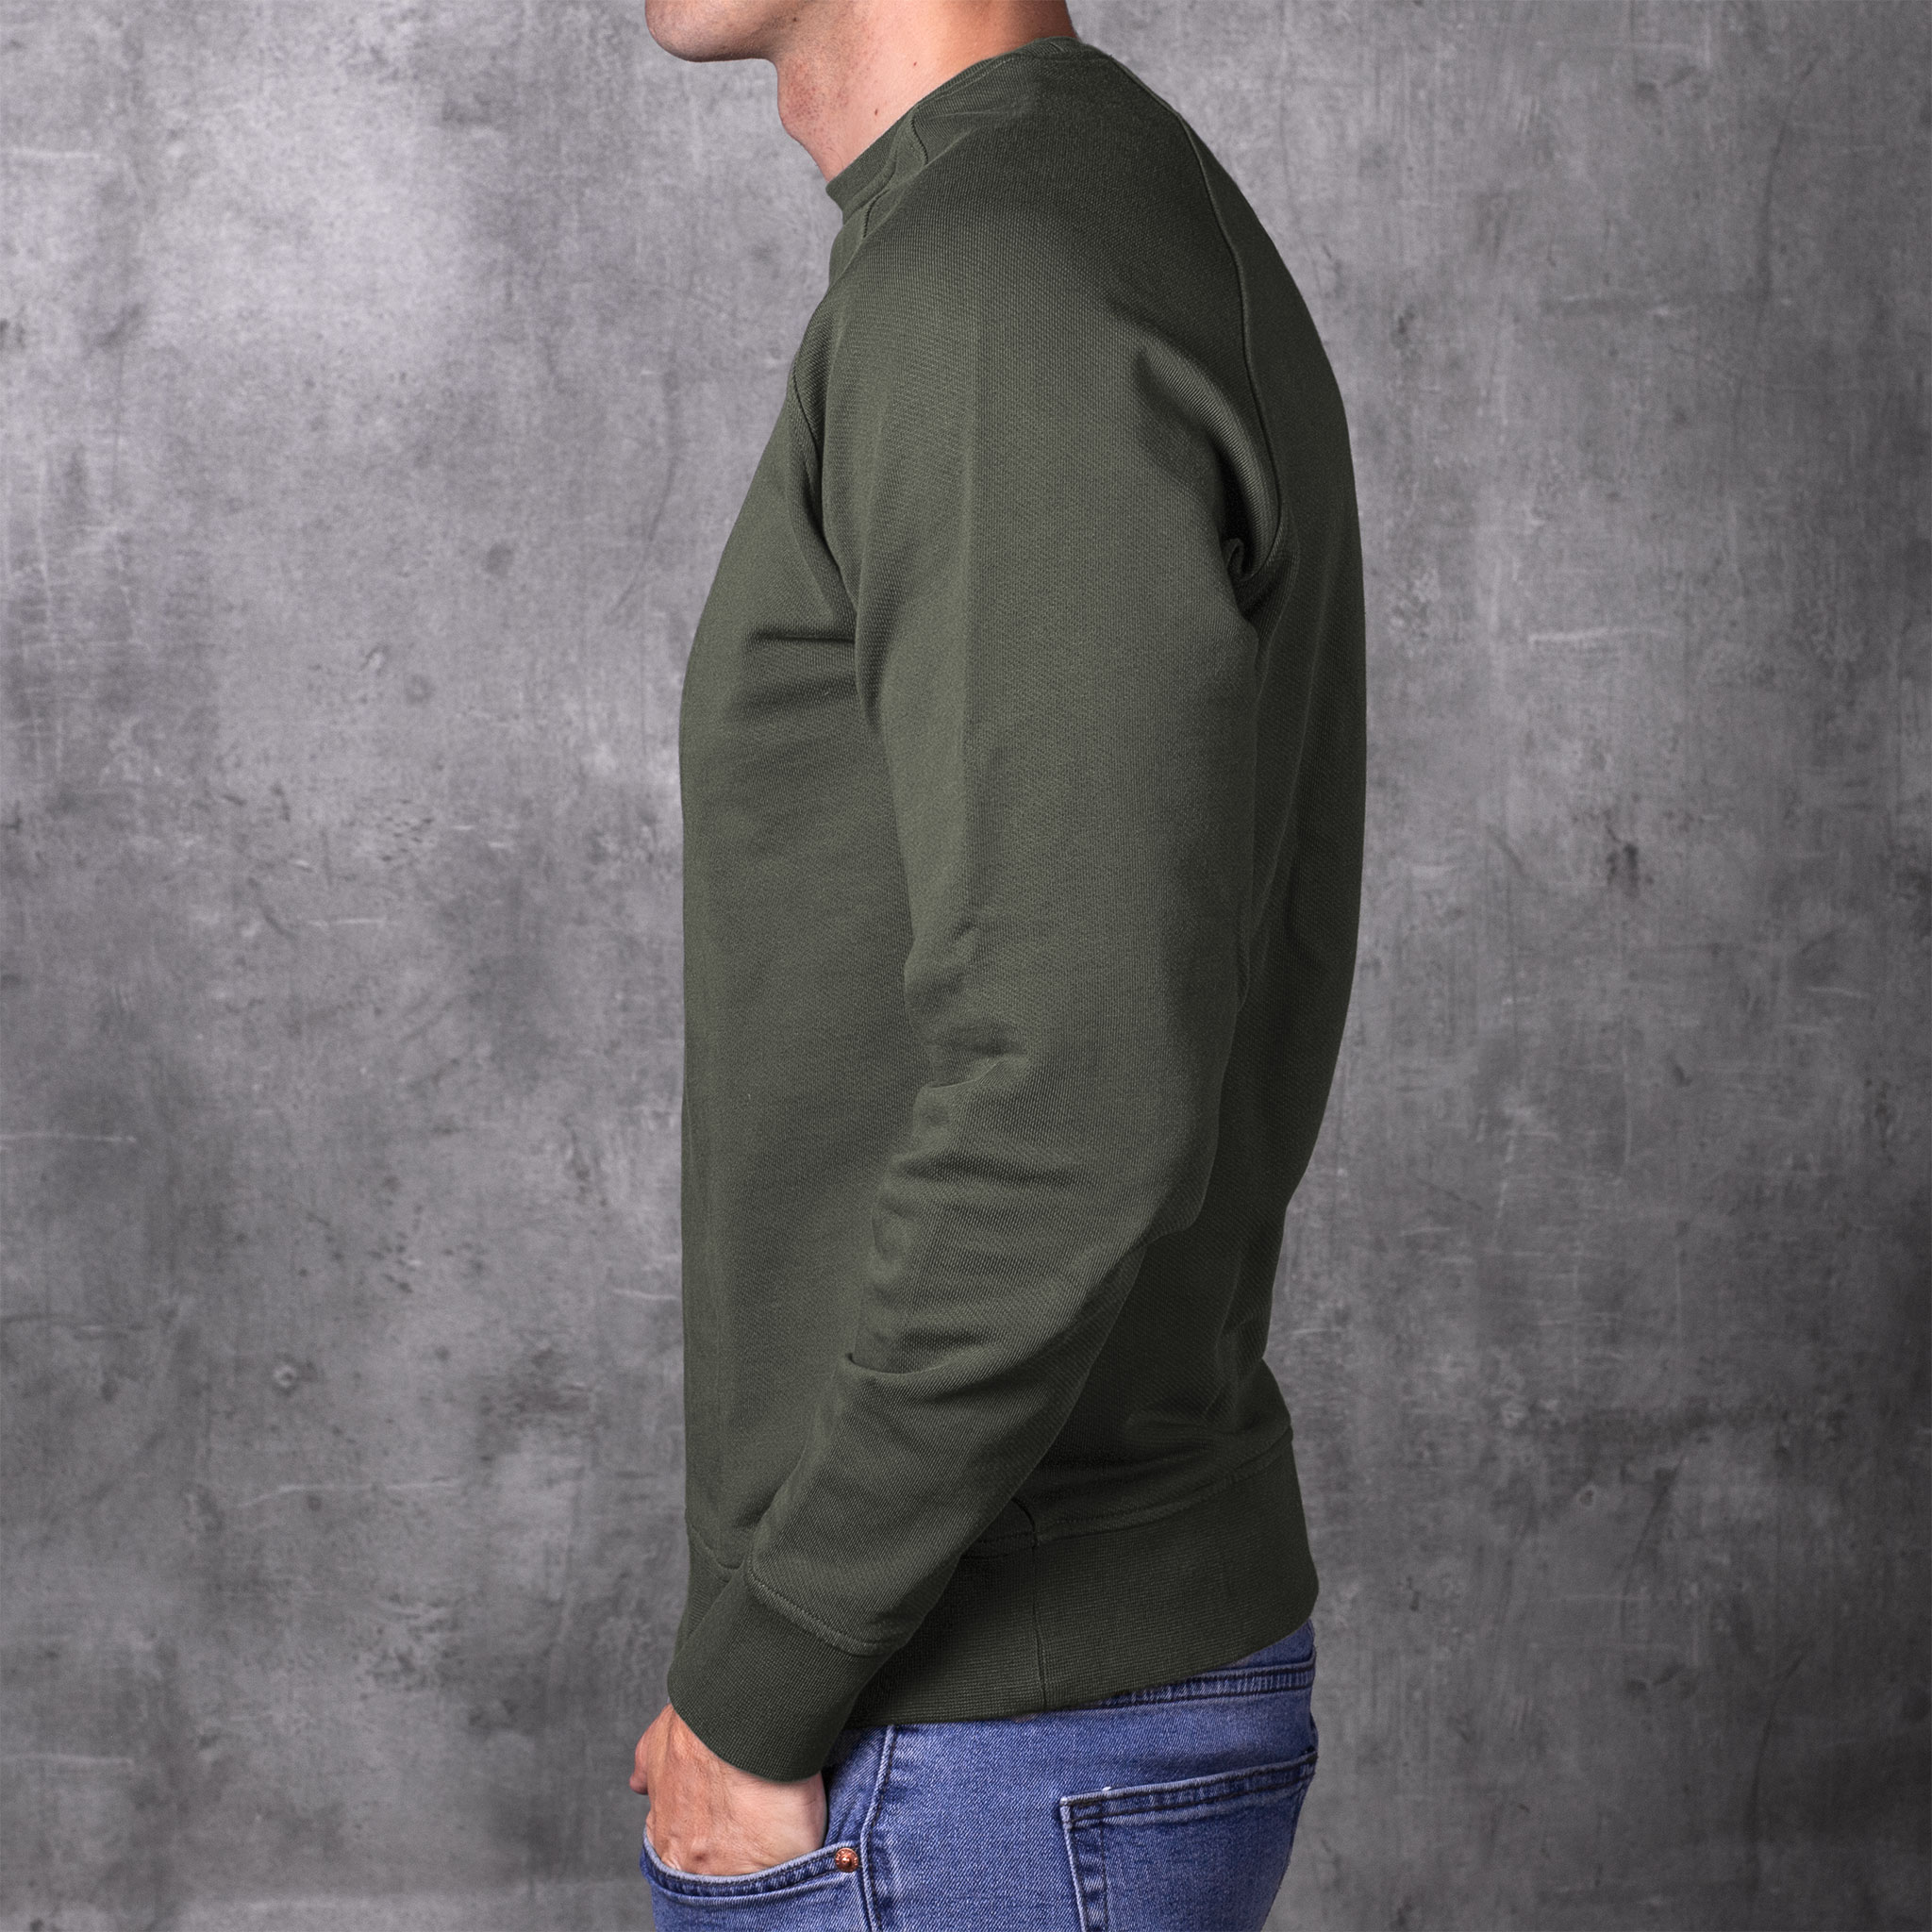 SWEATSHIRT 01.01 GREEN SUDADERA 01.01 VERDE The Seëlk 2